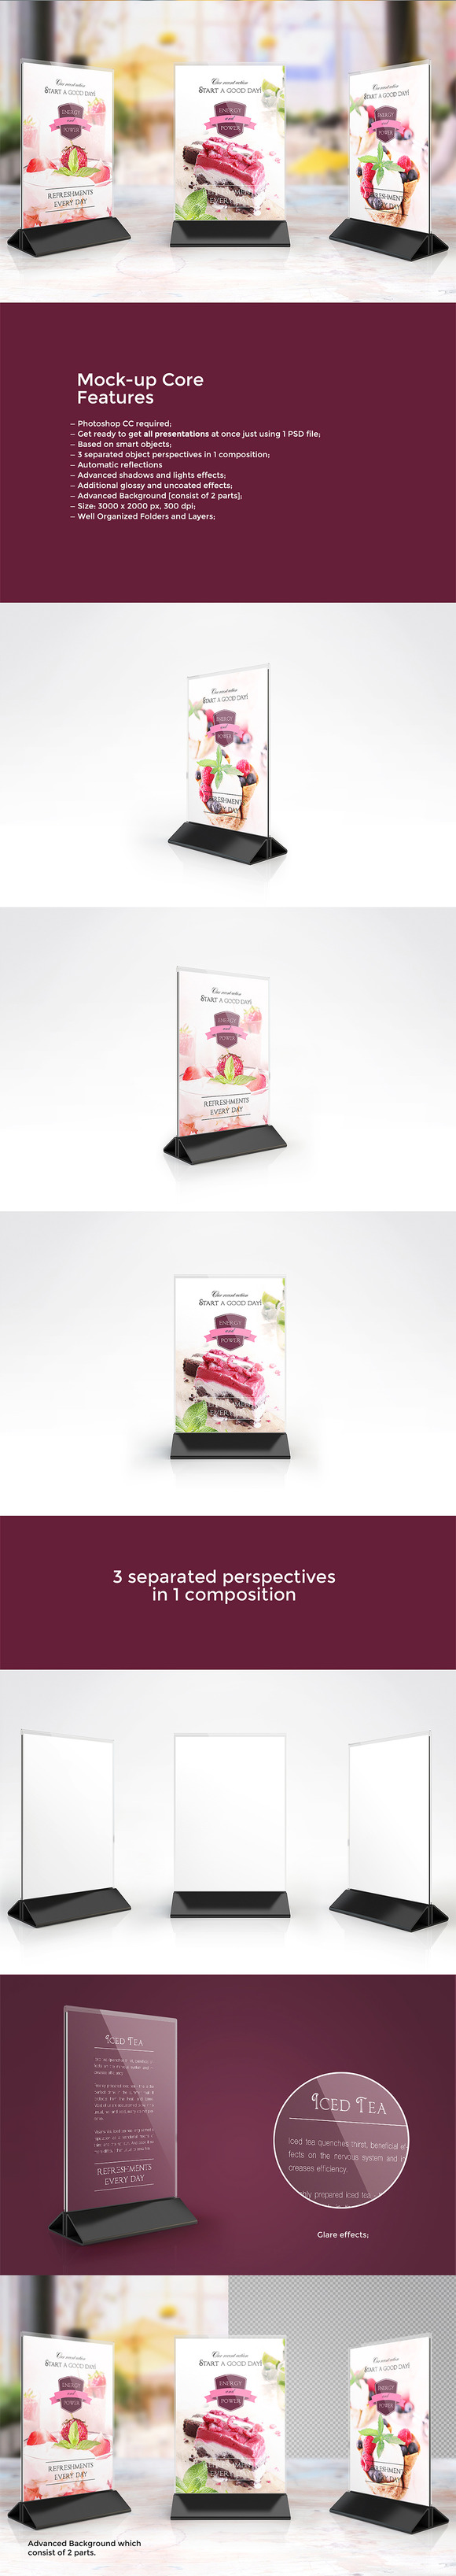 Table Tent Mock-up Vol.7 - Product Mockups